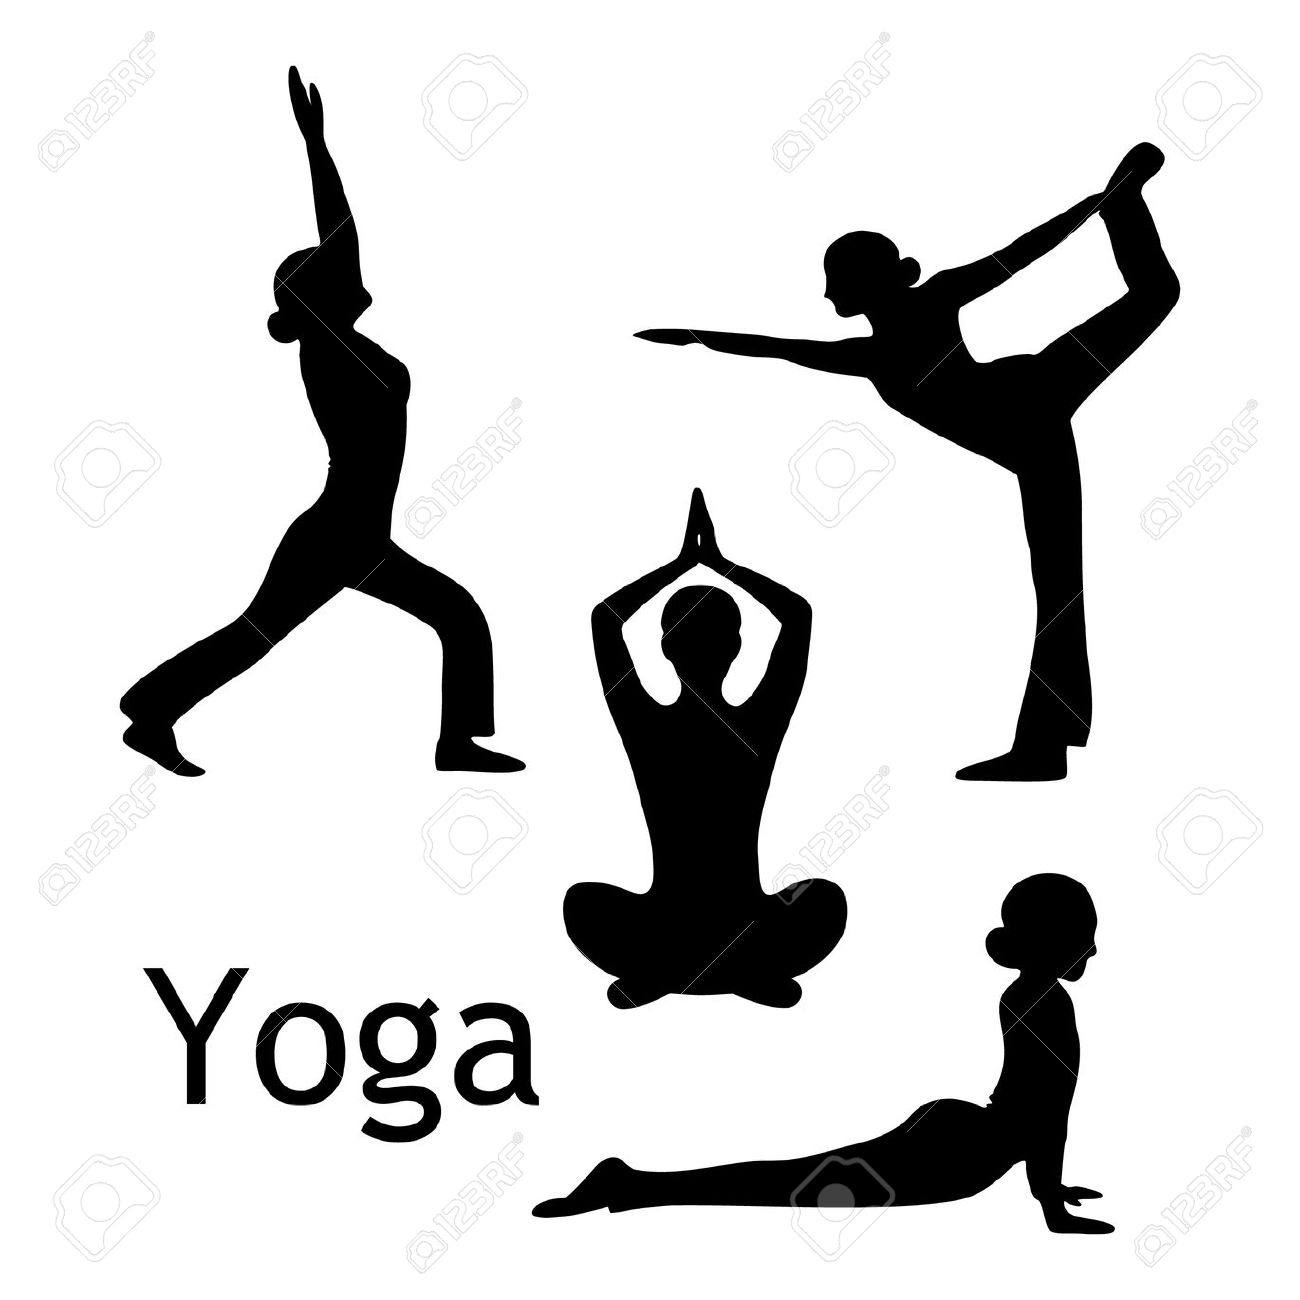 Zen clipart deep breathing Pose Draw Yoga Yoga Clipart